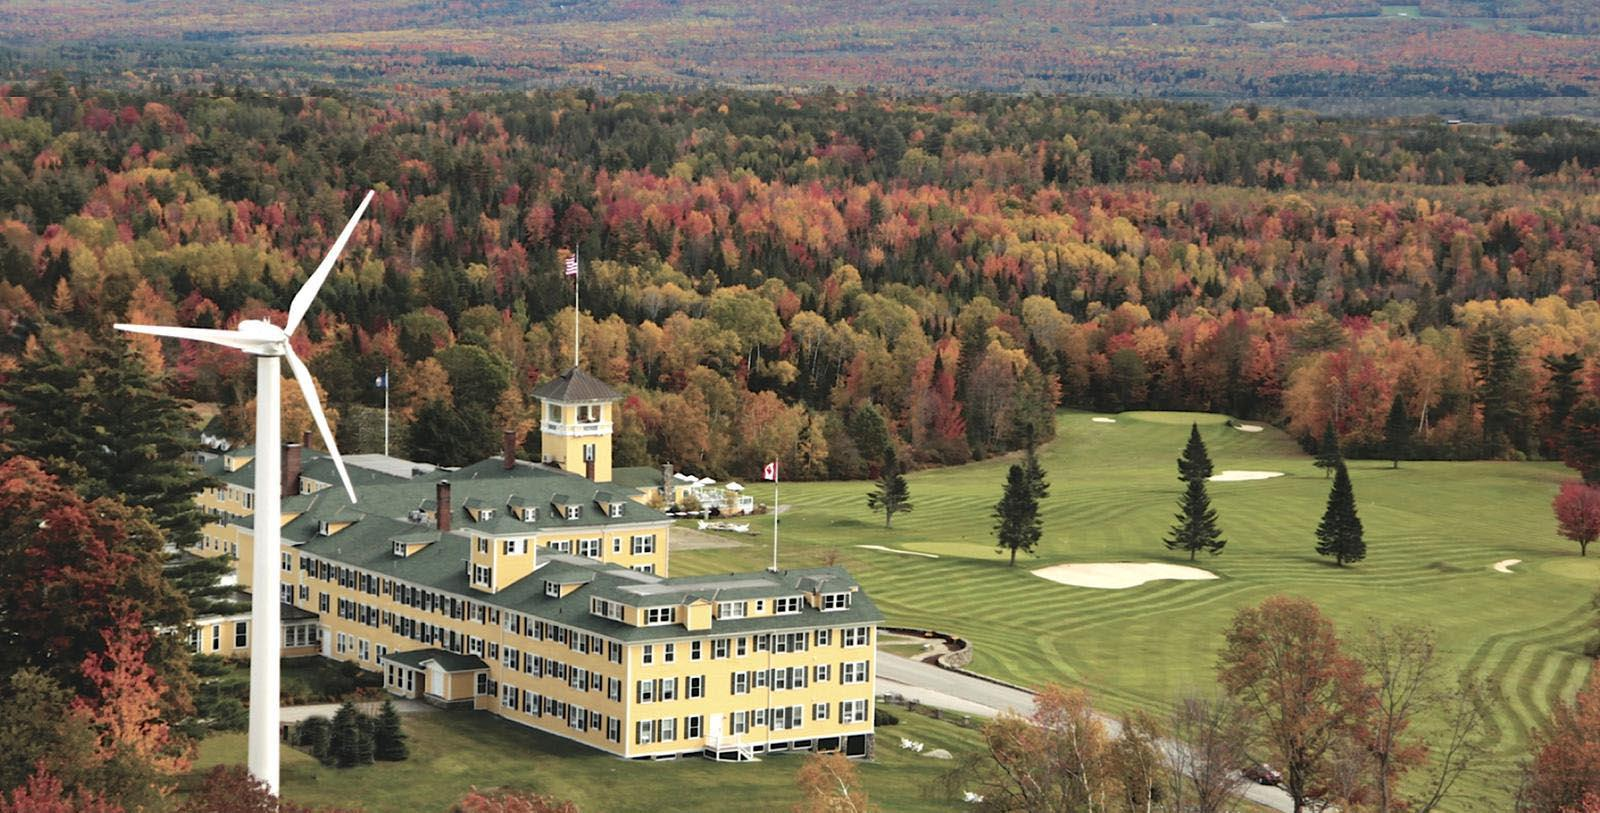 Image of Hotel Exterior & Golf Course, Mountain View Grand Resort & Spa in Whitefield, New Hampshire, 1865, Member of Historic Hotels of America, Overview